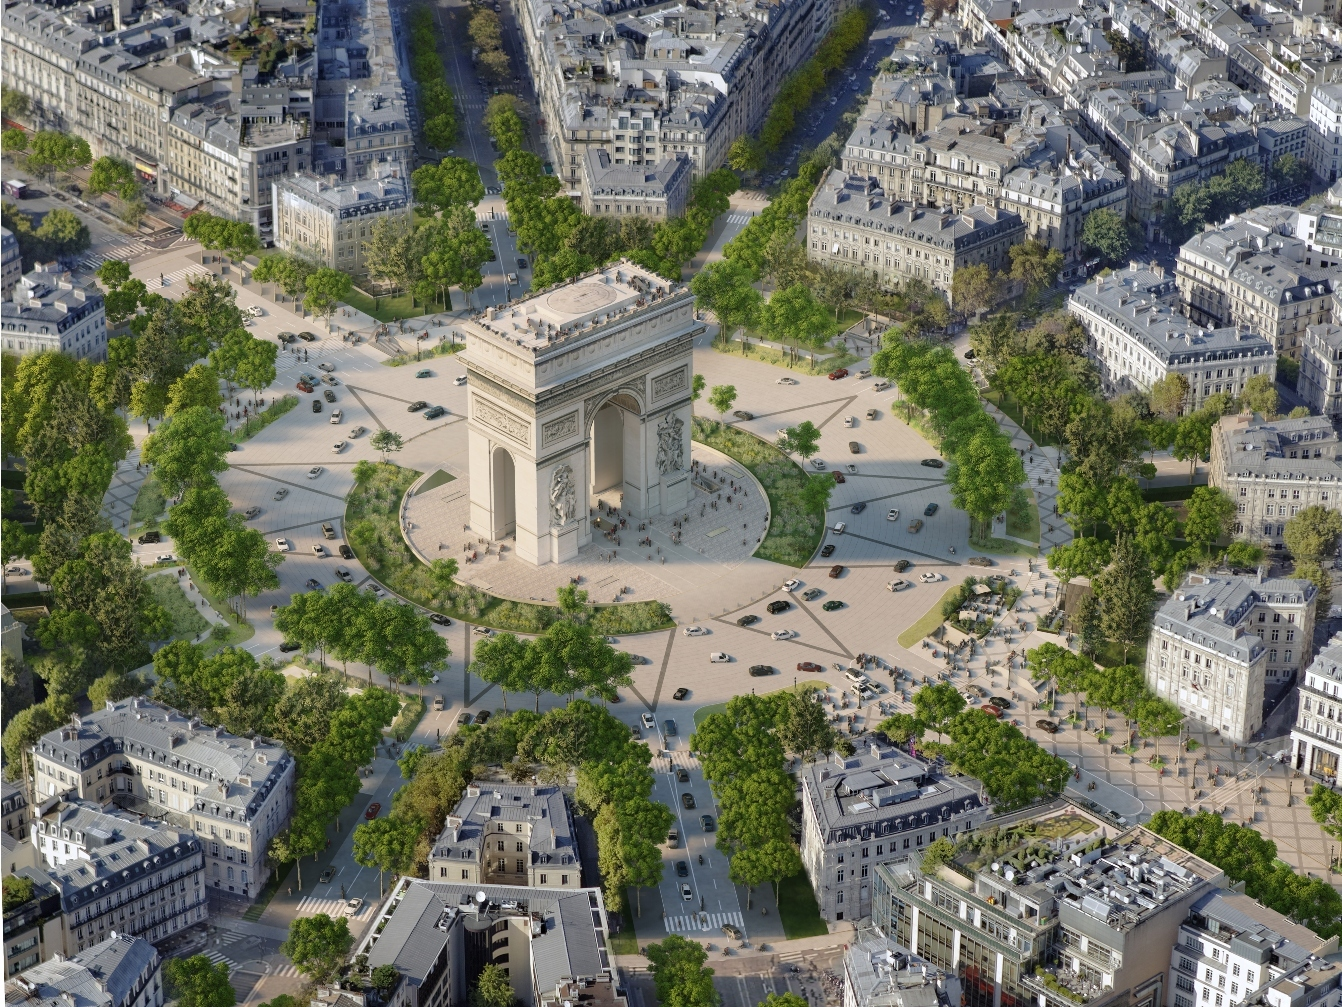 Paris's most famous street is becoming a huge urban garden